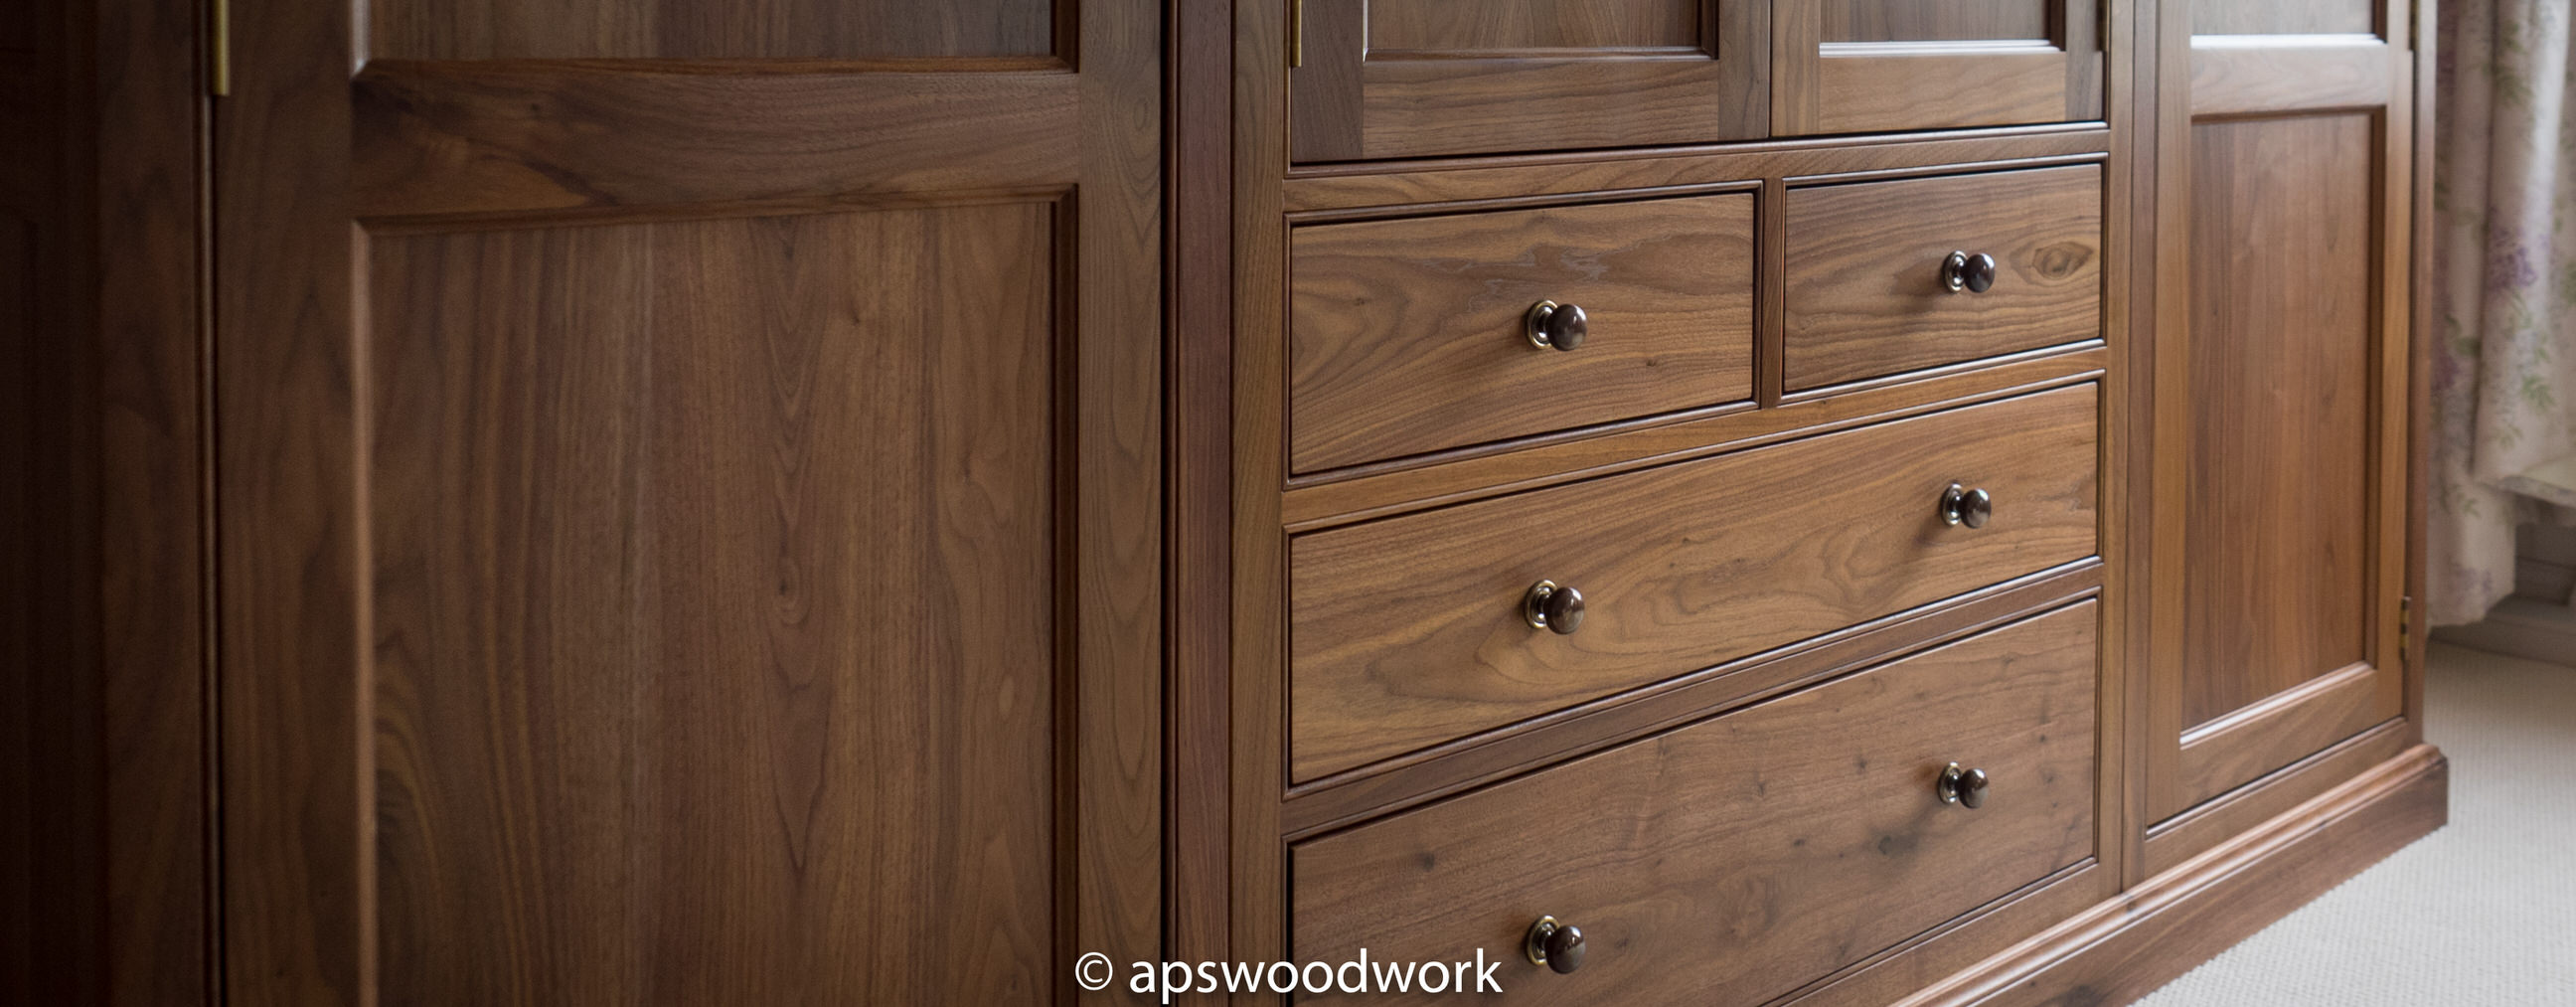 APS Woodwork Ltd